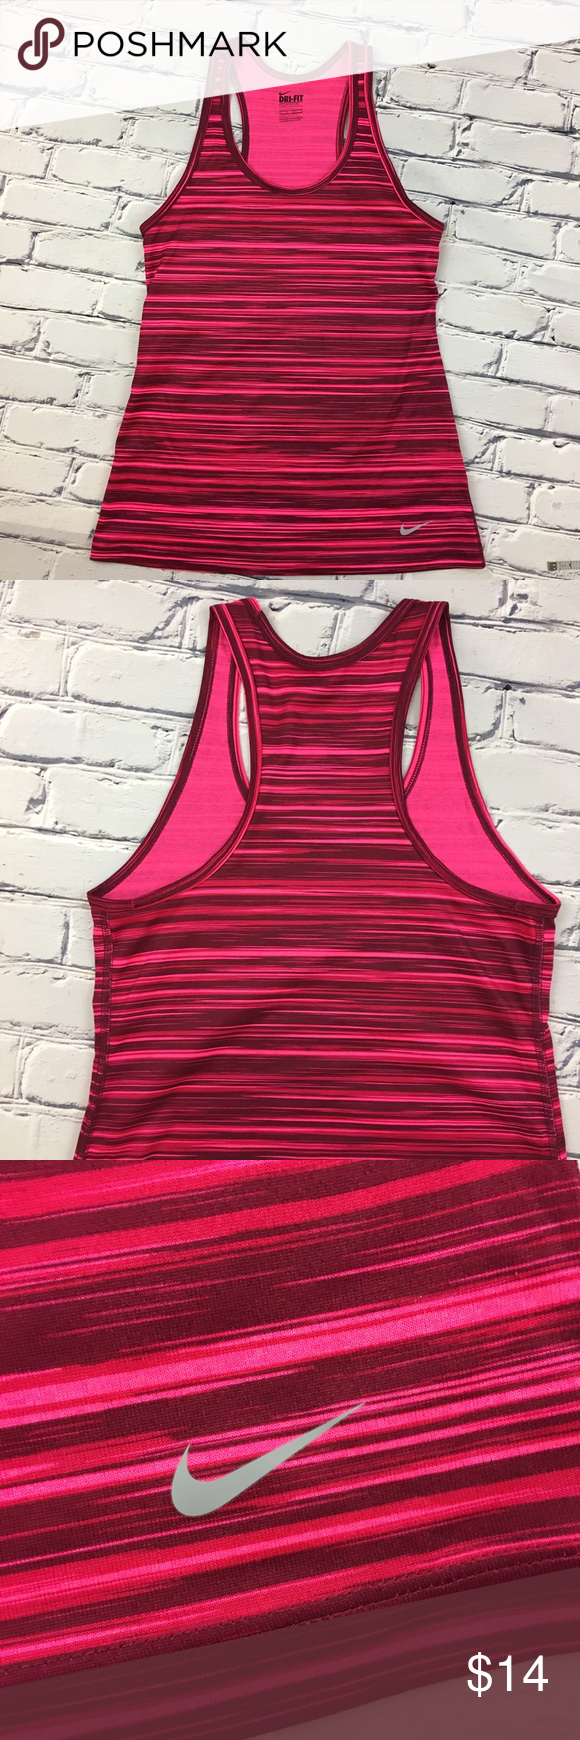 Nike Dri-Fit Racerback Exercise Tank Pre-owned, excellent condition